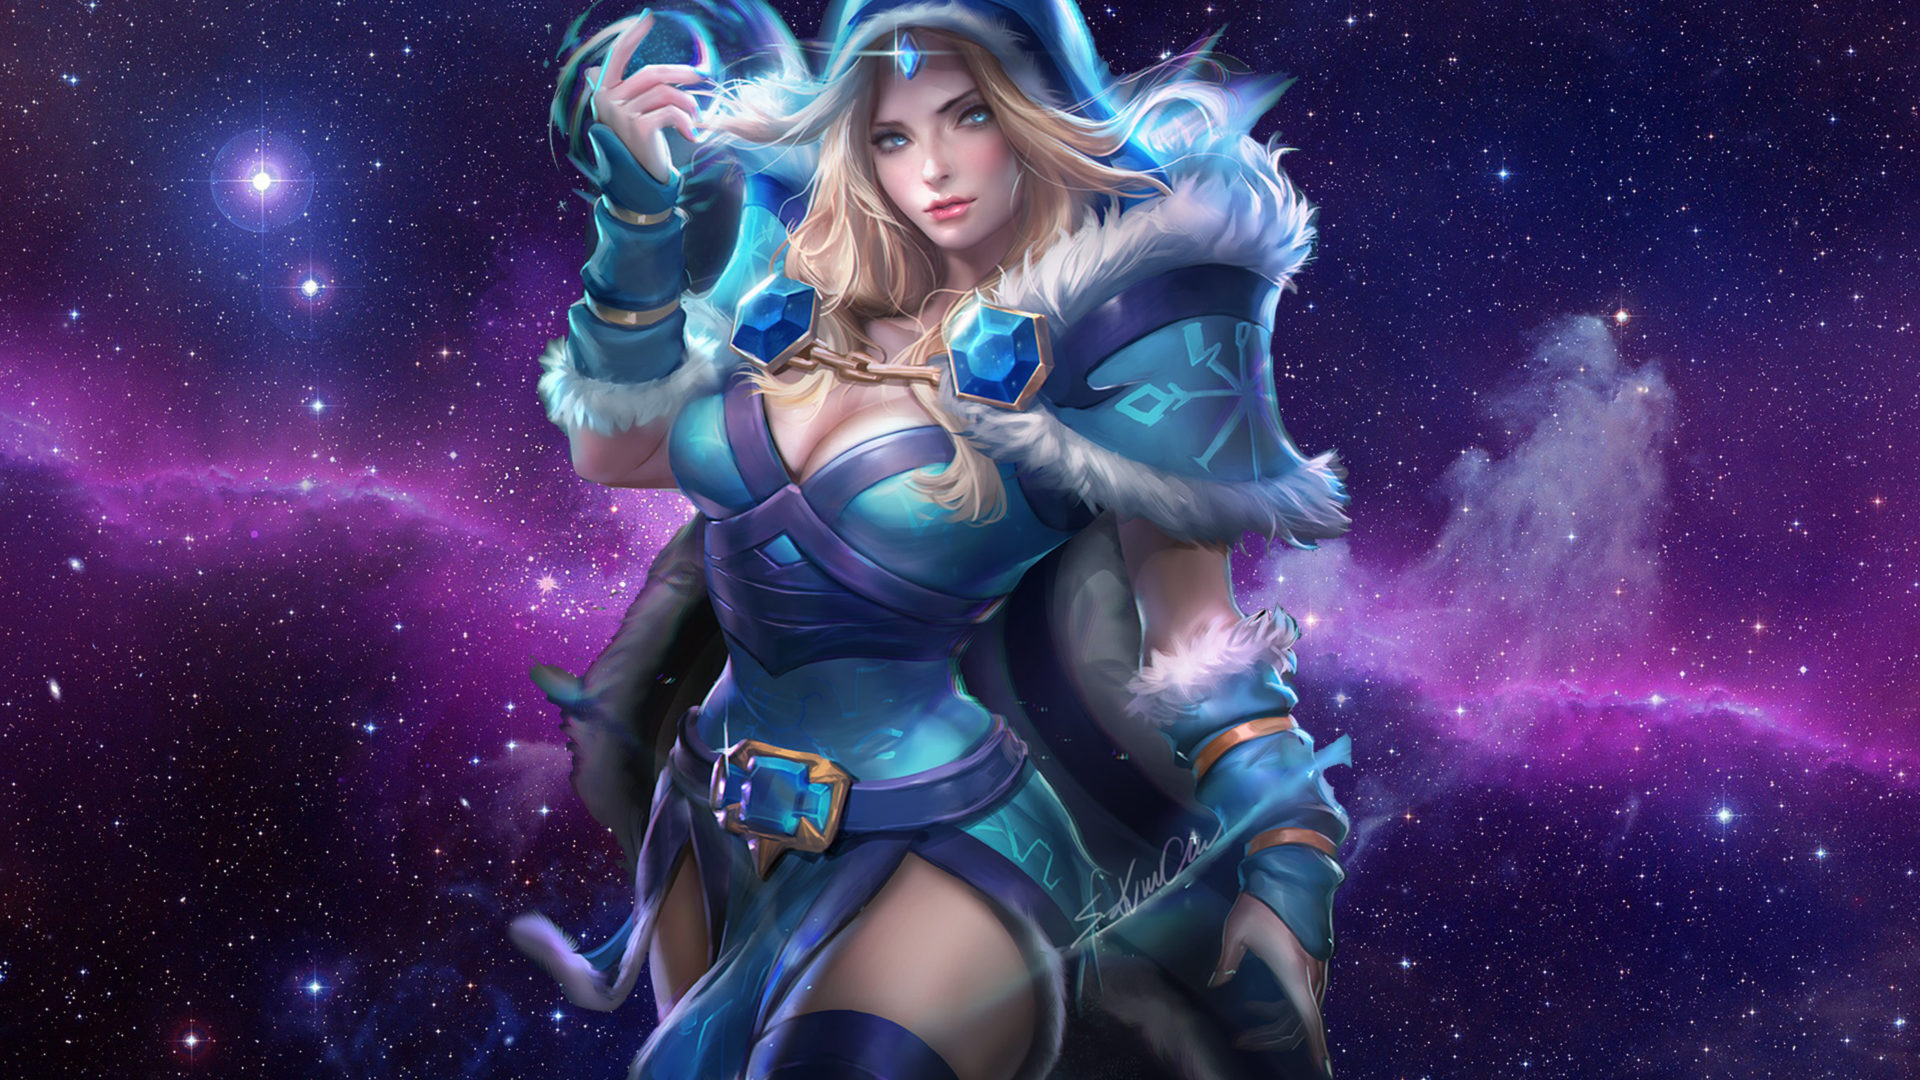 World Beautiful Girl Wallpaper Sakimichan Rylai The Crystal Maiden Dota 2 Art Picture Of